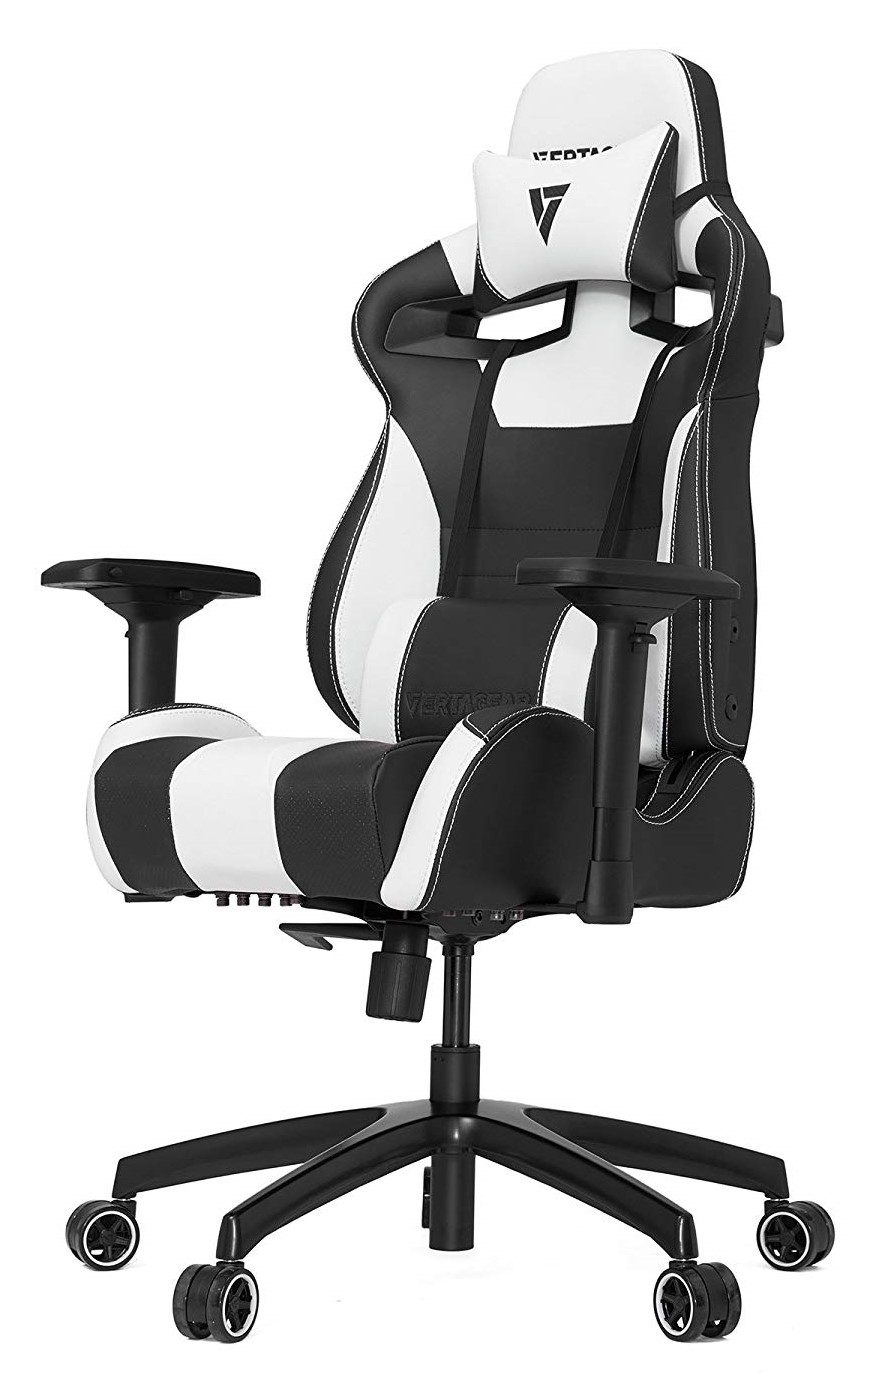 big and tall gaming chair for guys heavy duty chairs. Black Bedroom Furniture Sets. Home Design Ideas